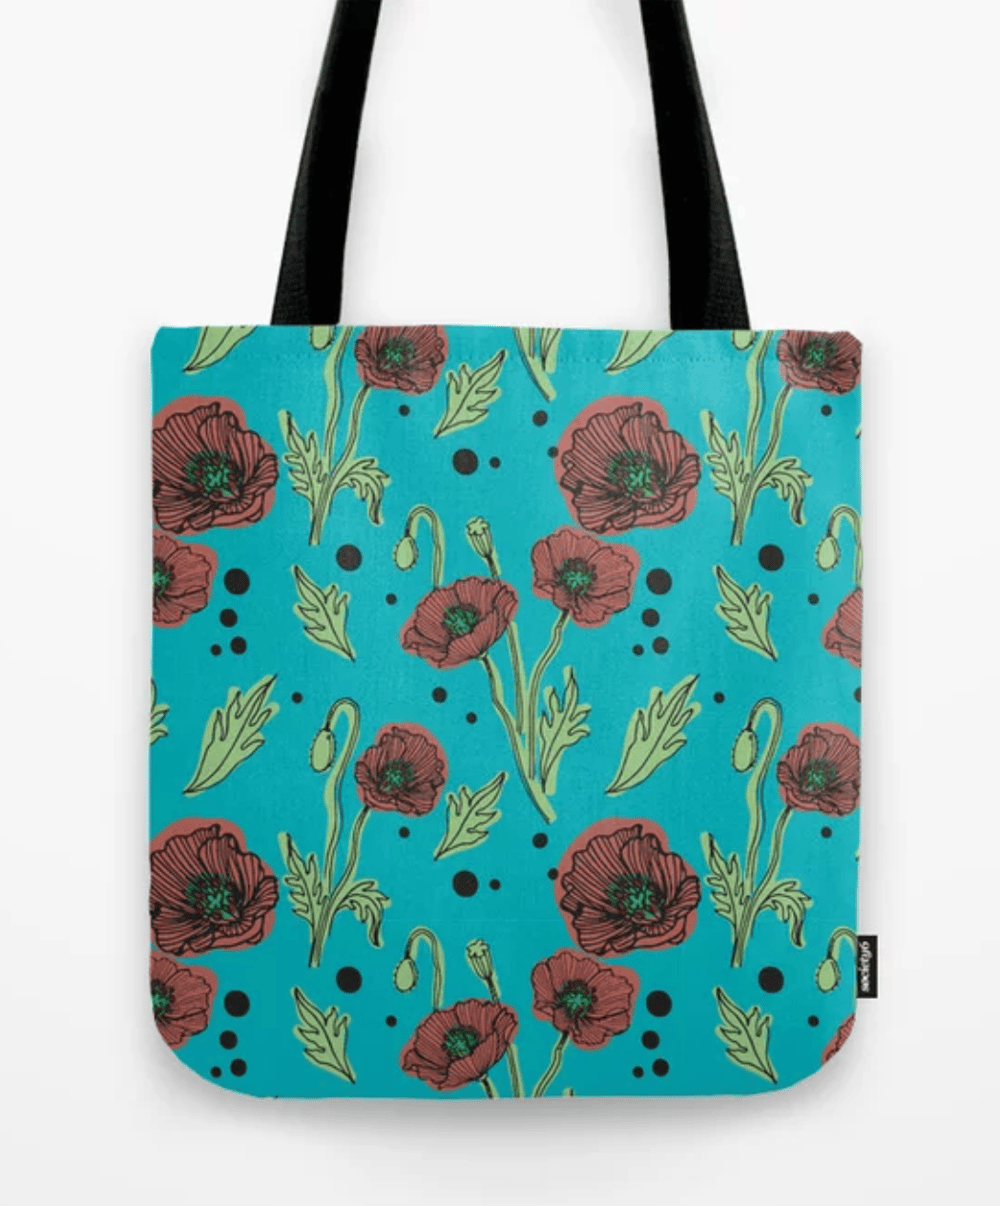 Society 6 Store - image 1 - student project